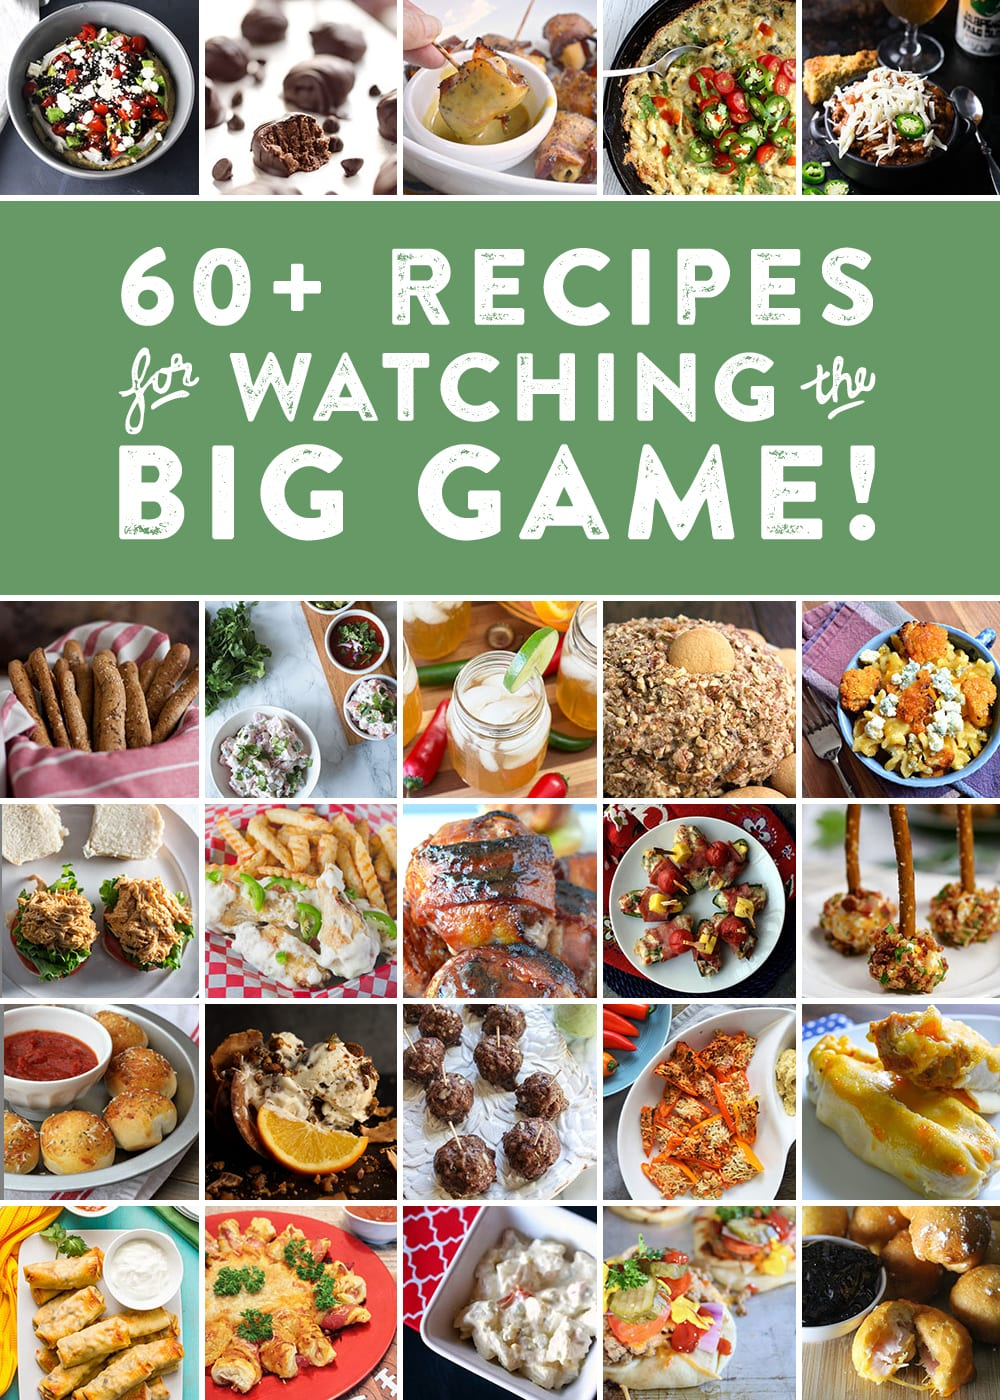 60 recipes for watching the Super Bowl.